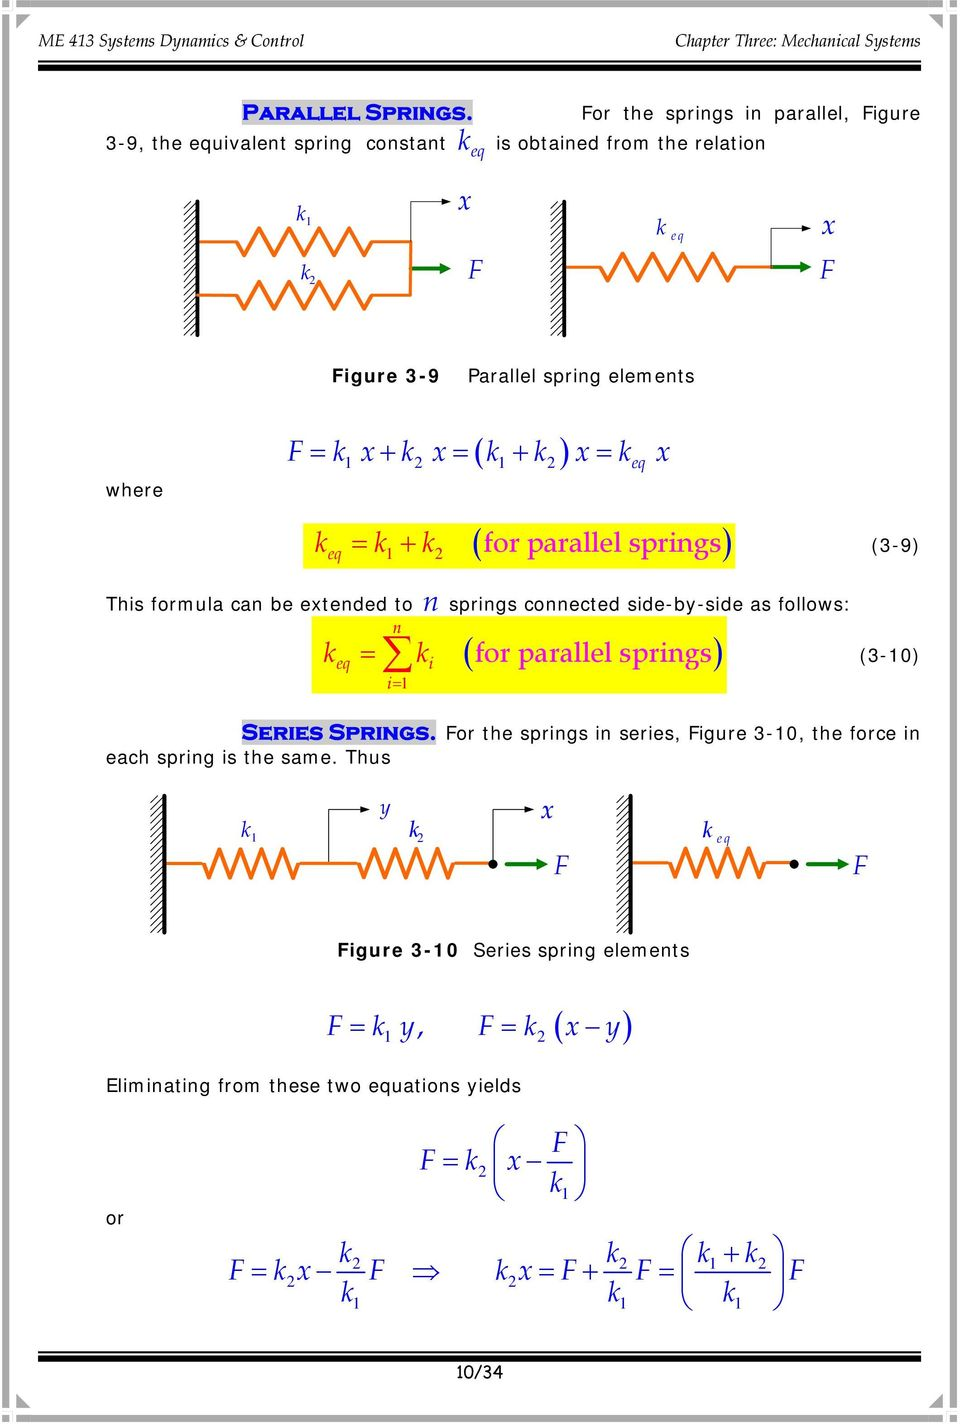 where F = k + k = k + k = k 1 1 eq keq = k1+ k for parallel springs (3-9) This formula can be etended to n springs connected side-by-side as follows: n k eq i= 1